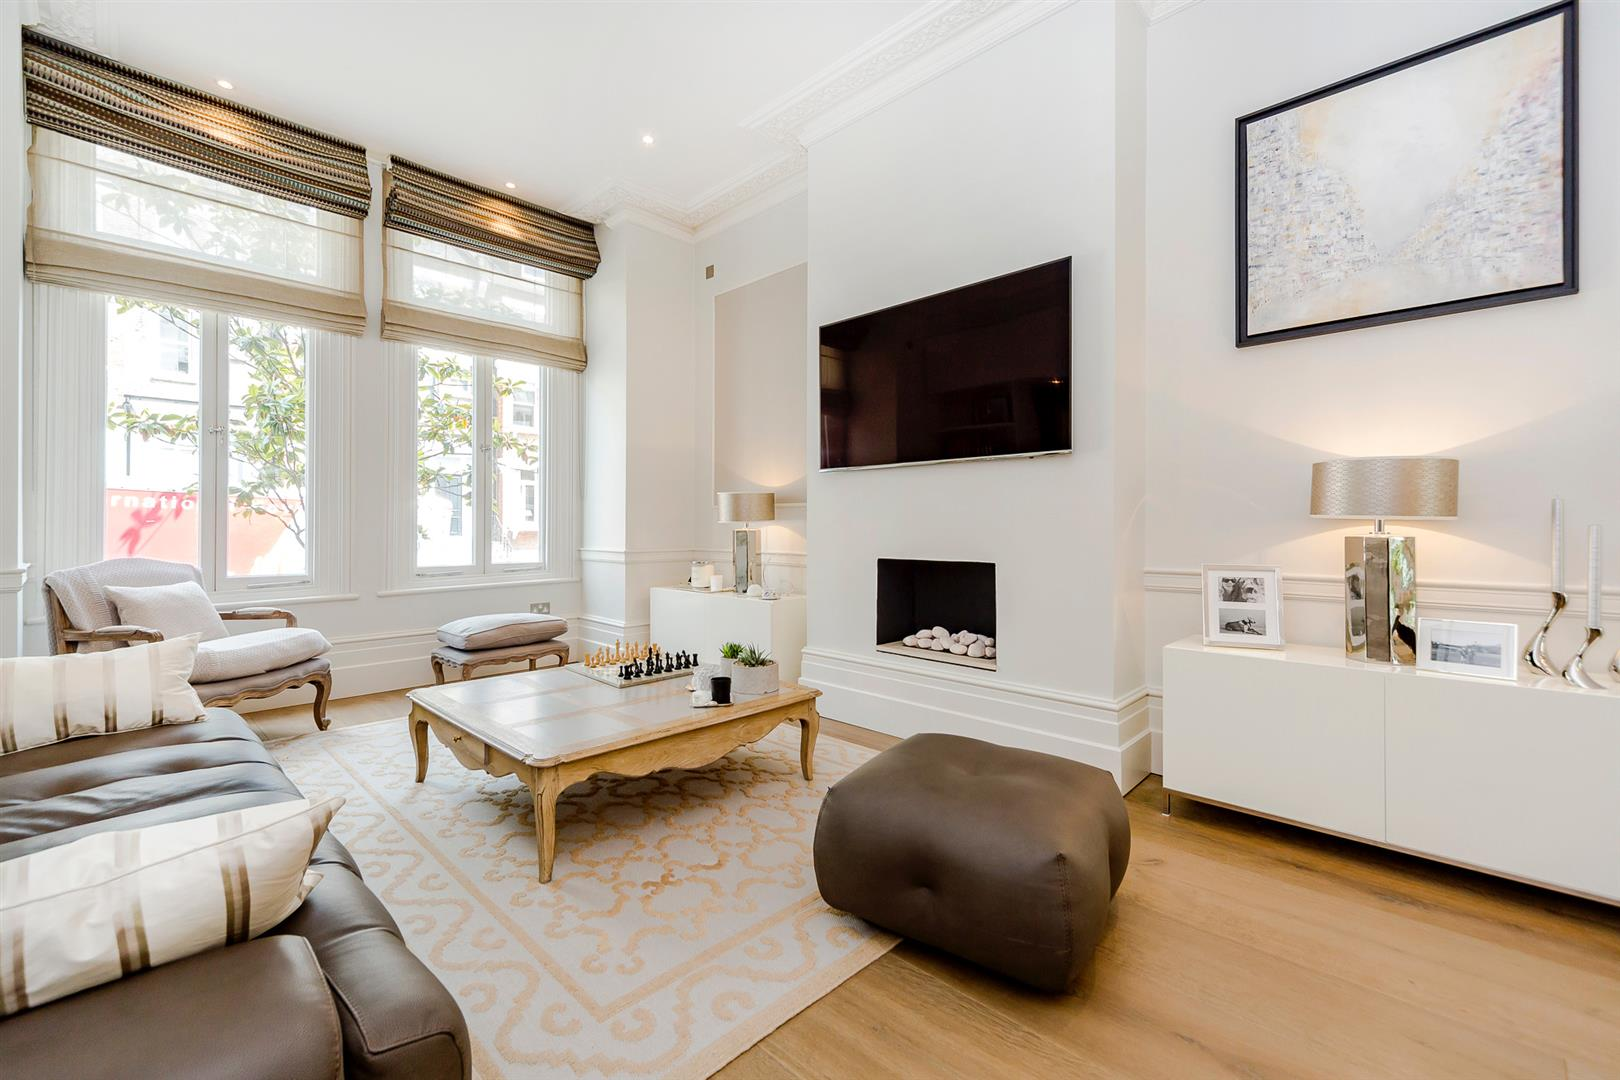 3 Bedrooms Flat for sale in Garden Maisonette, Carlingford Road, Hampstead Village, NW3